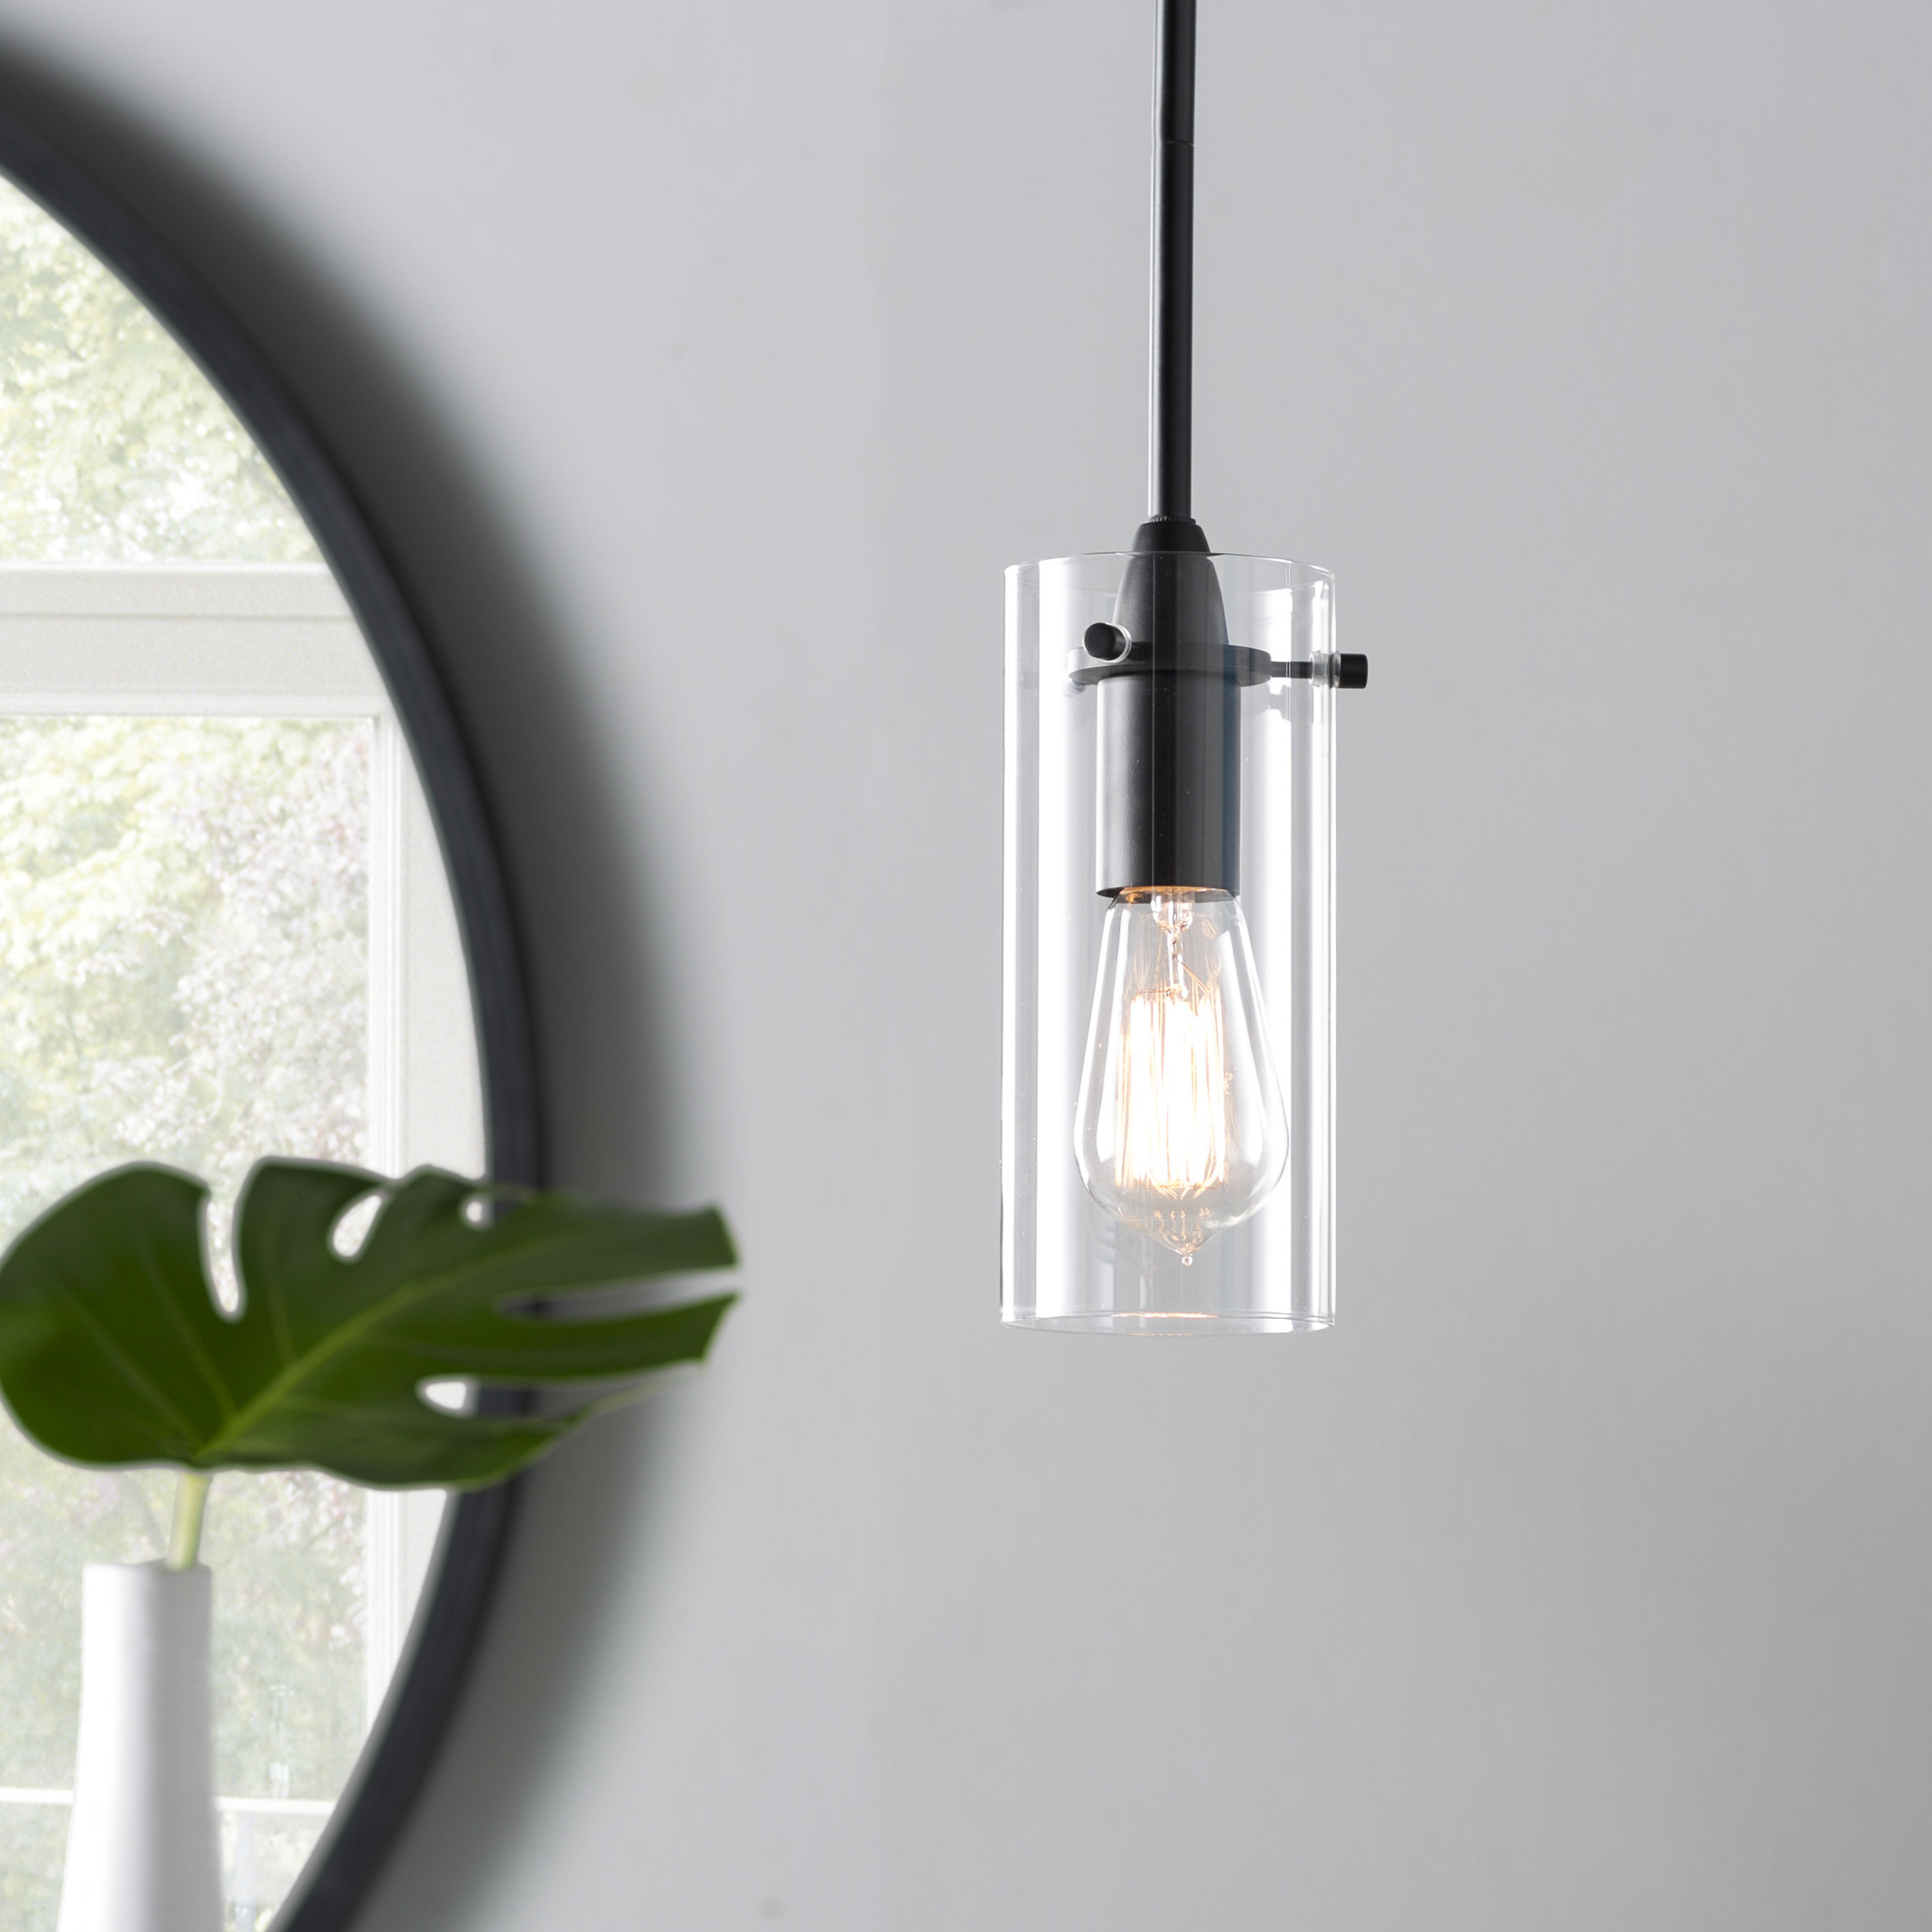 Widely Used Angelina 1 Light Single Cylinder Pendants Intended For Ivy Bronx Angelina 1 Light Single Cylinder Pendant & Reviews (View 3 of 25)